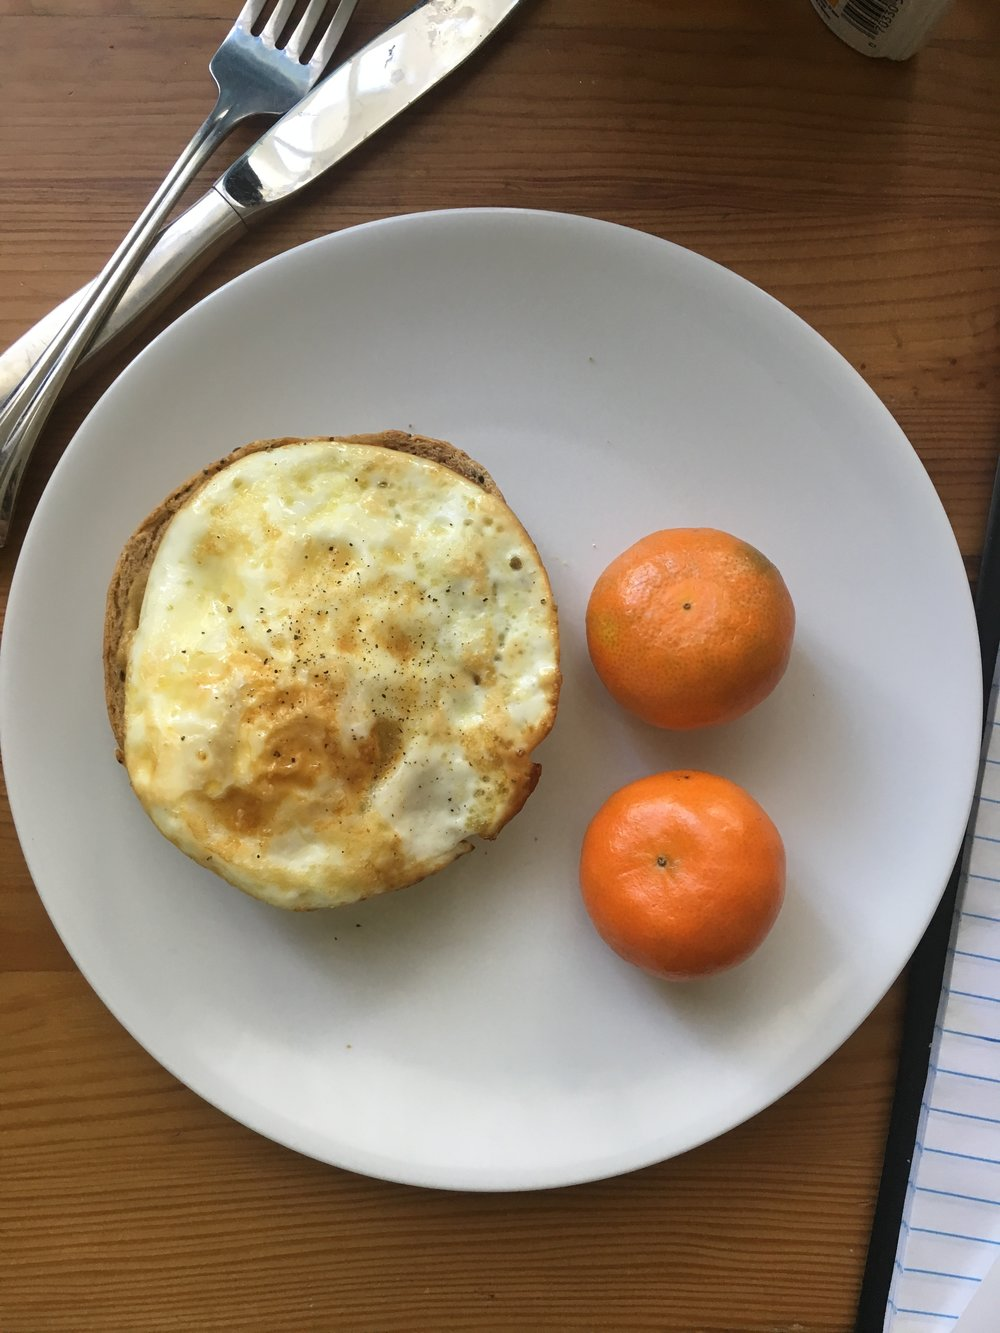 Egg, toast and tangerines. #nofilter